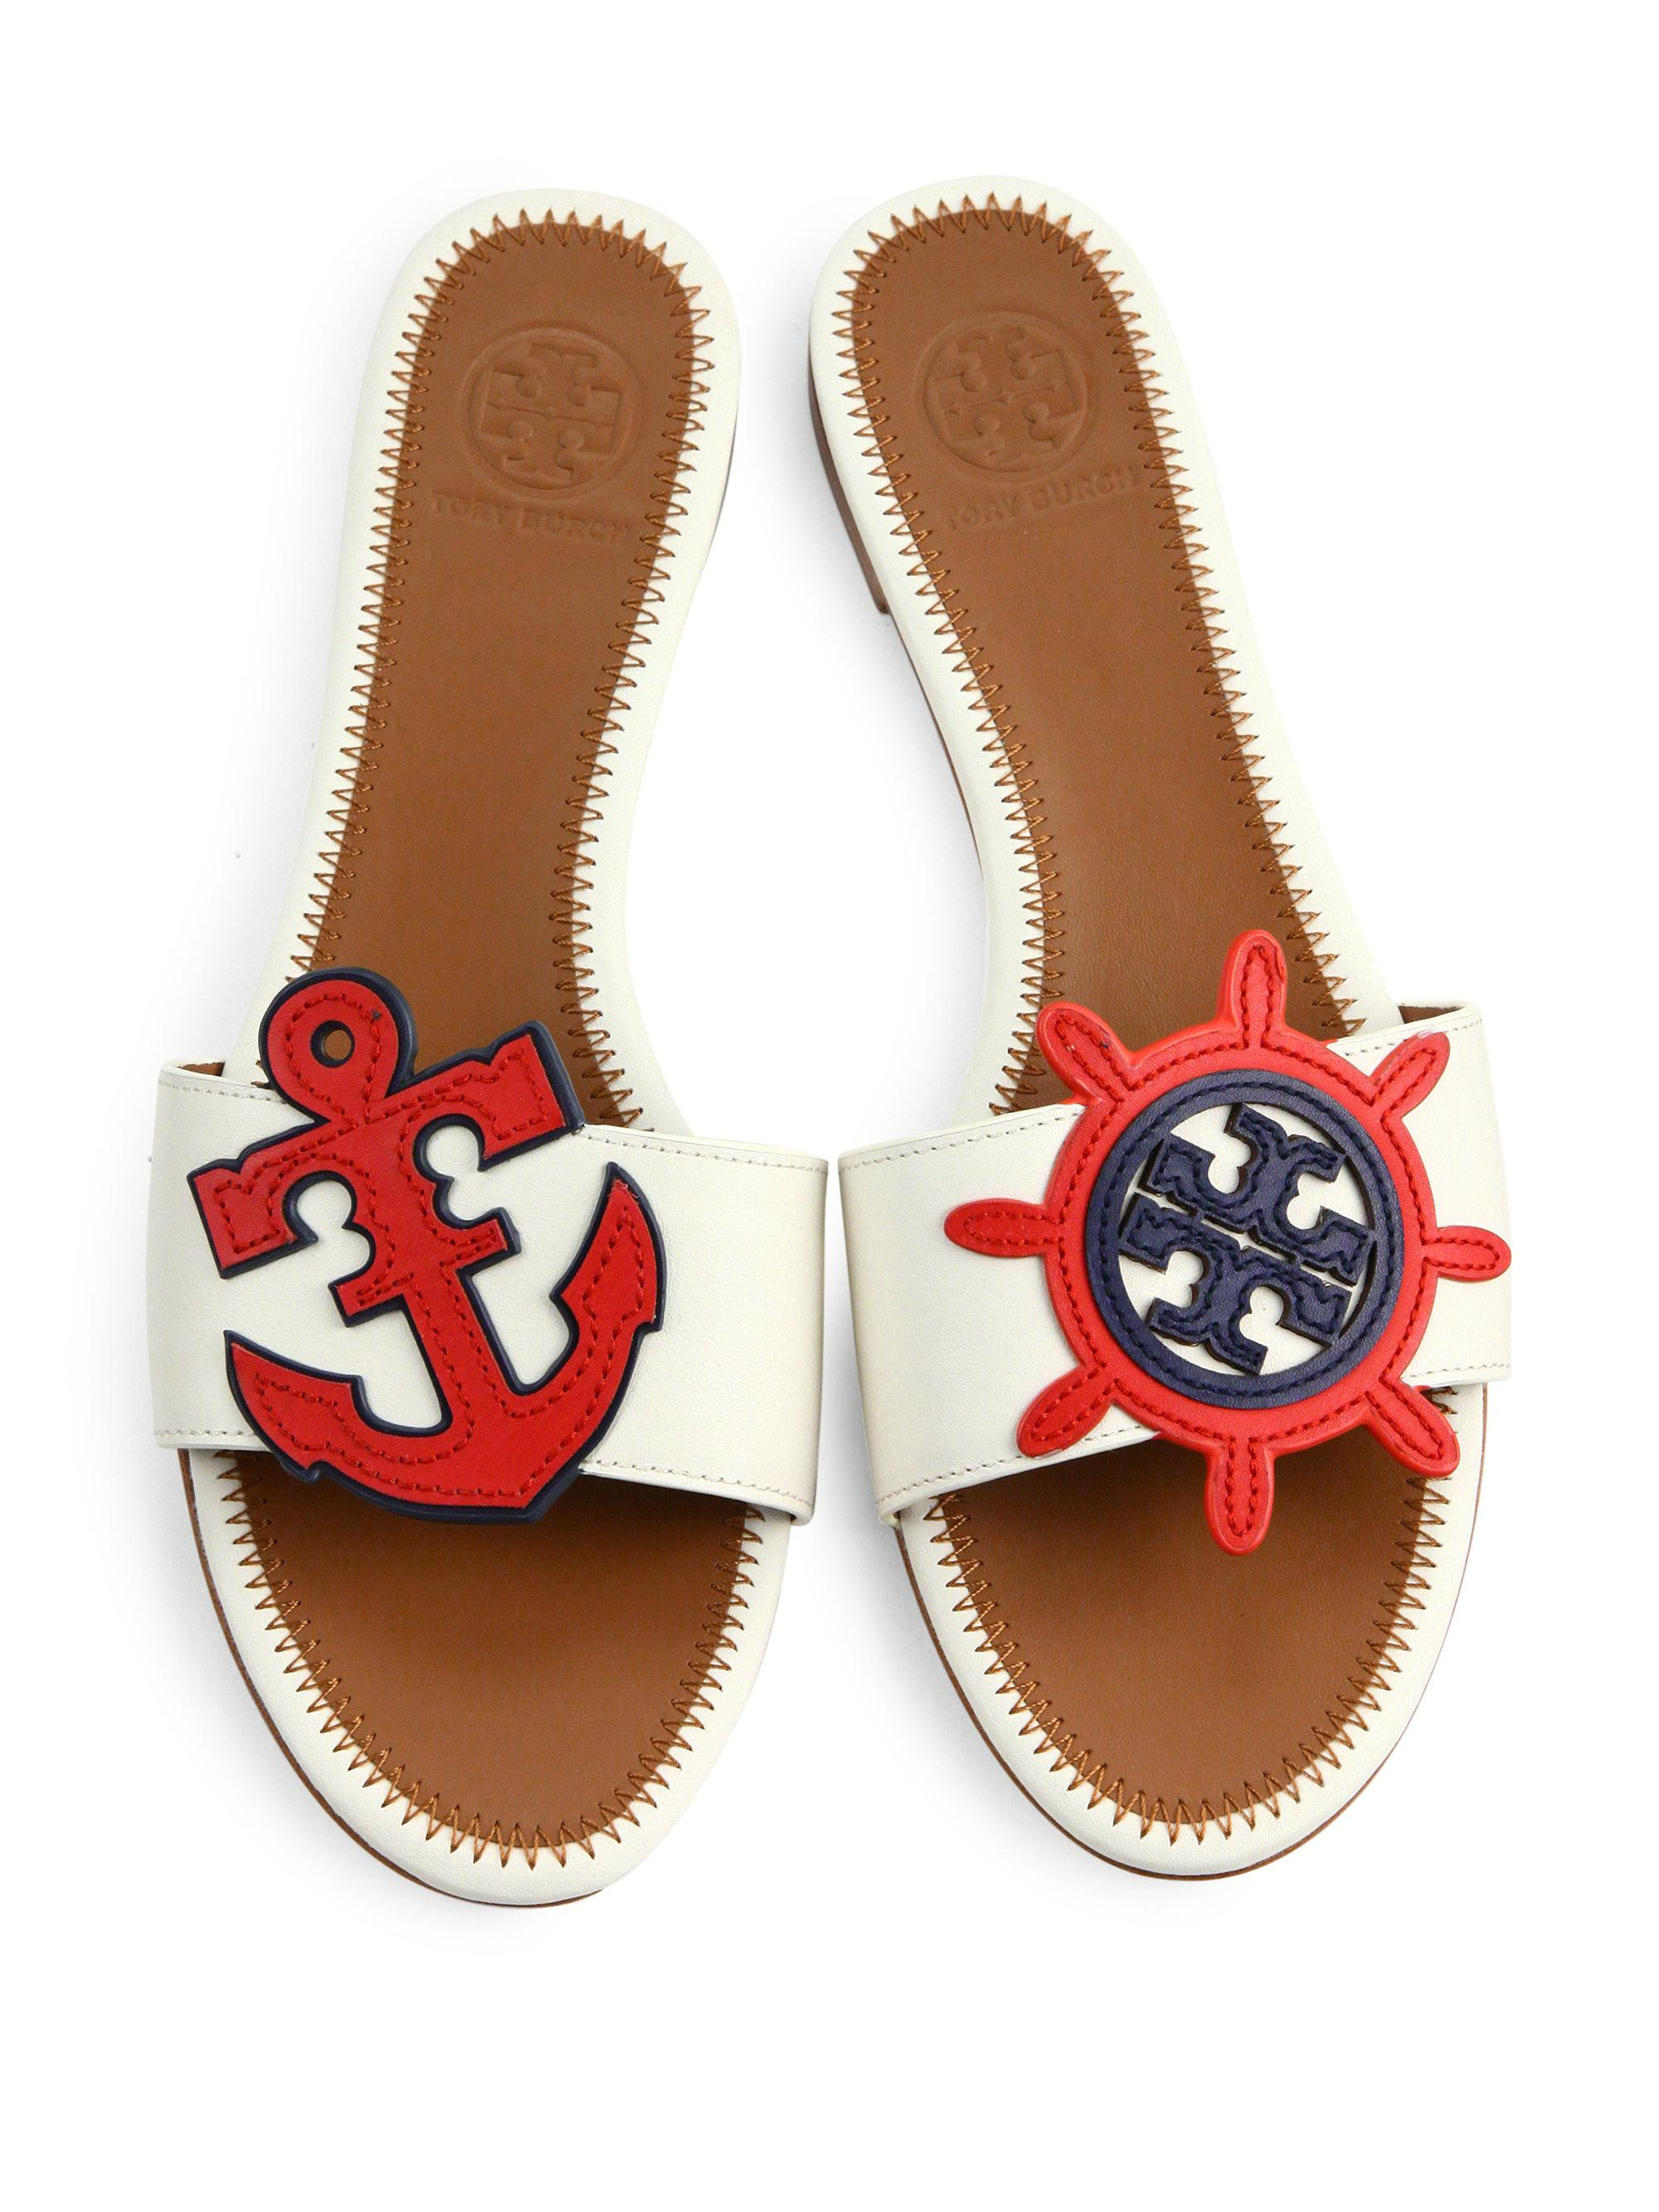 9a0334b5bef Lyst - Tory Burch Maritime Leather Slides in White